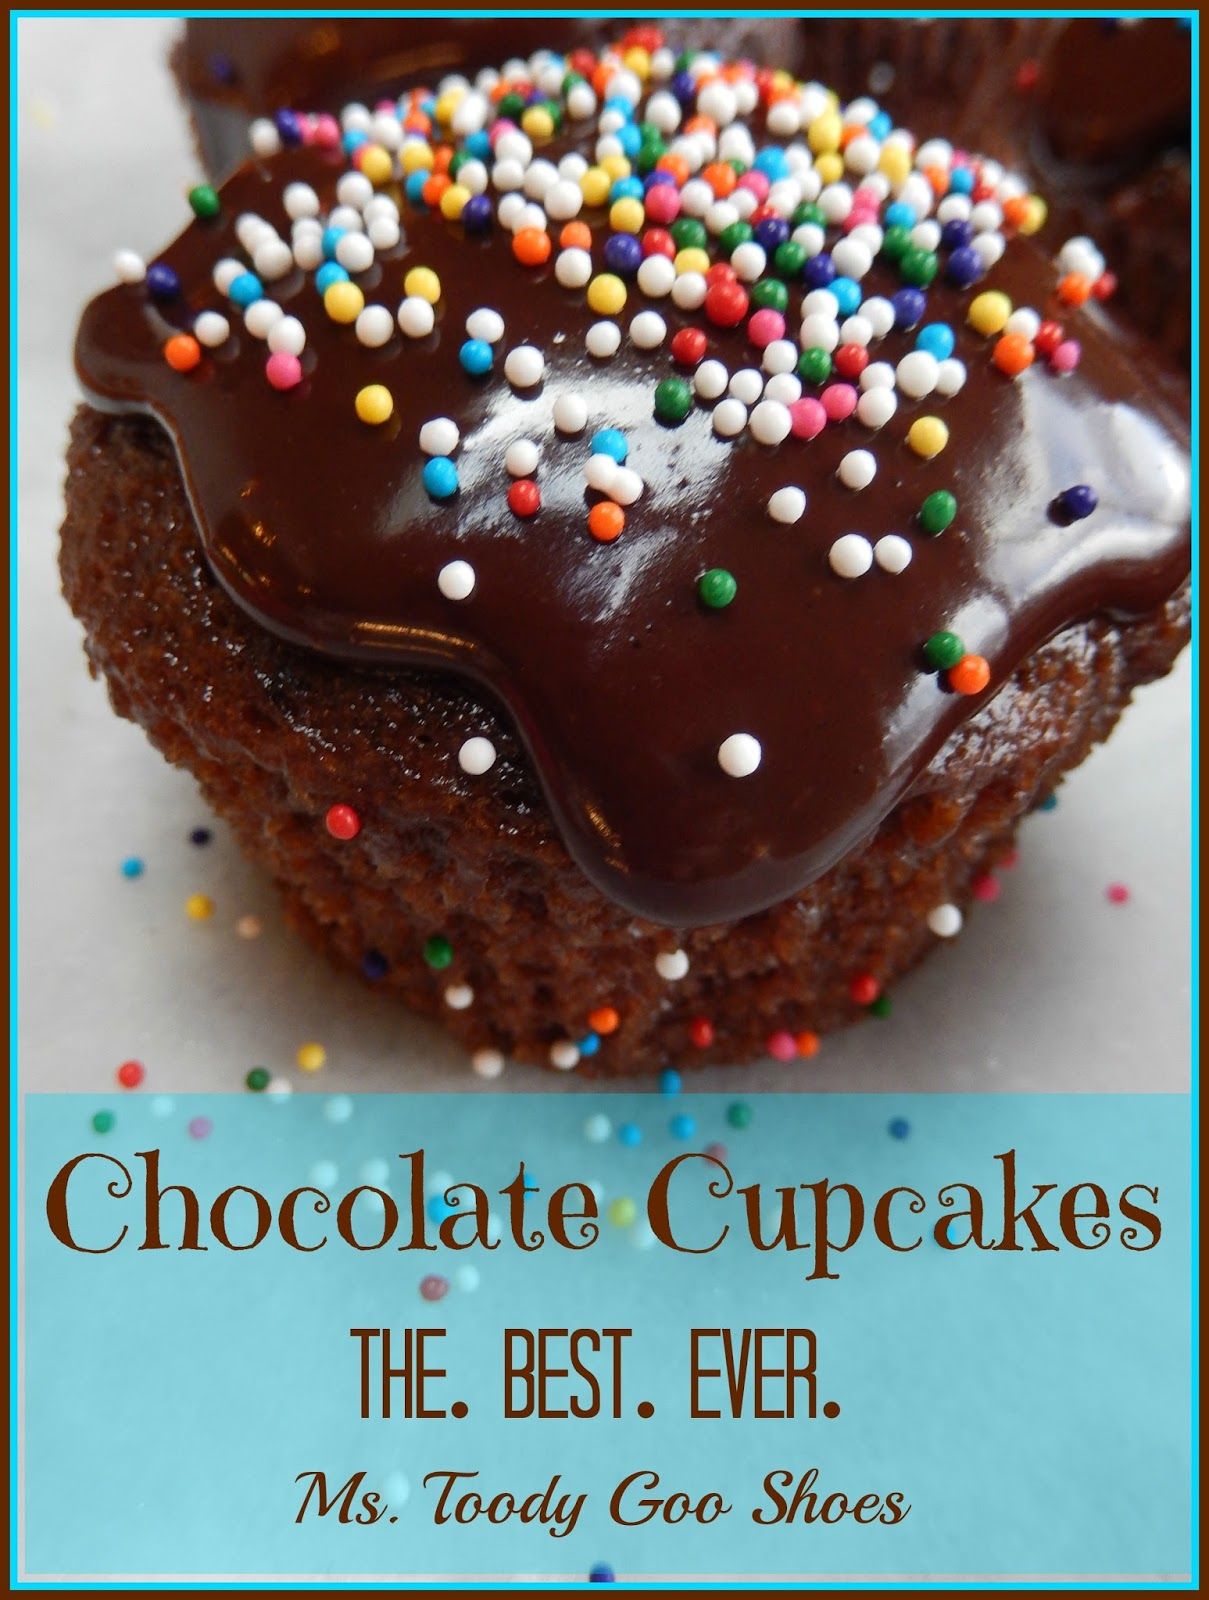 Chcolate Cupcakes: The. Best. Ever. - One of my top five dessert recipes of 2014